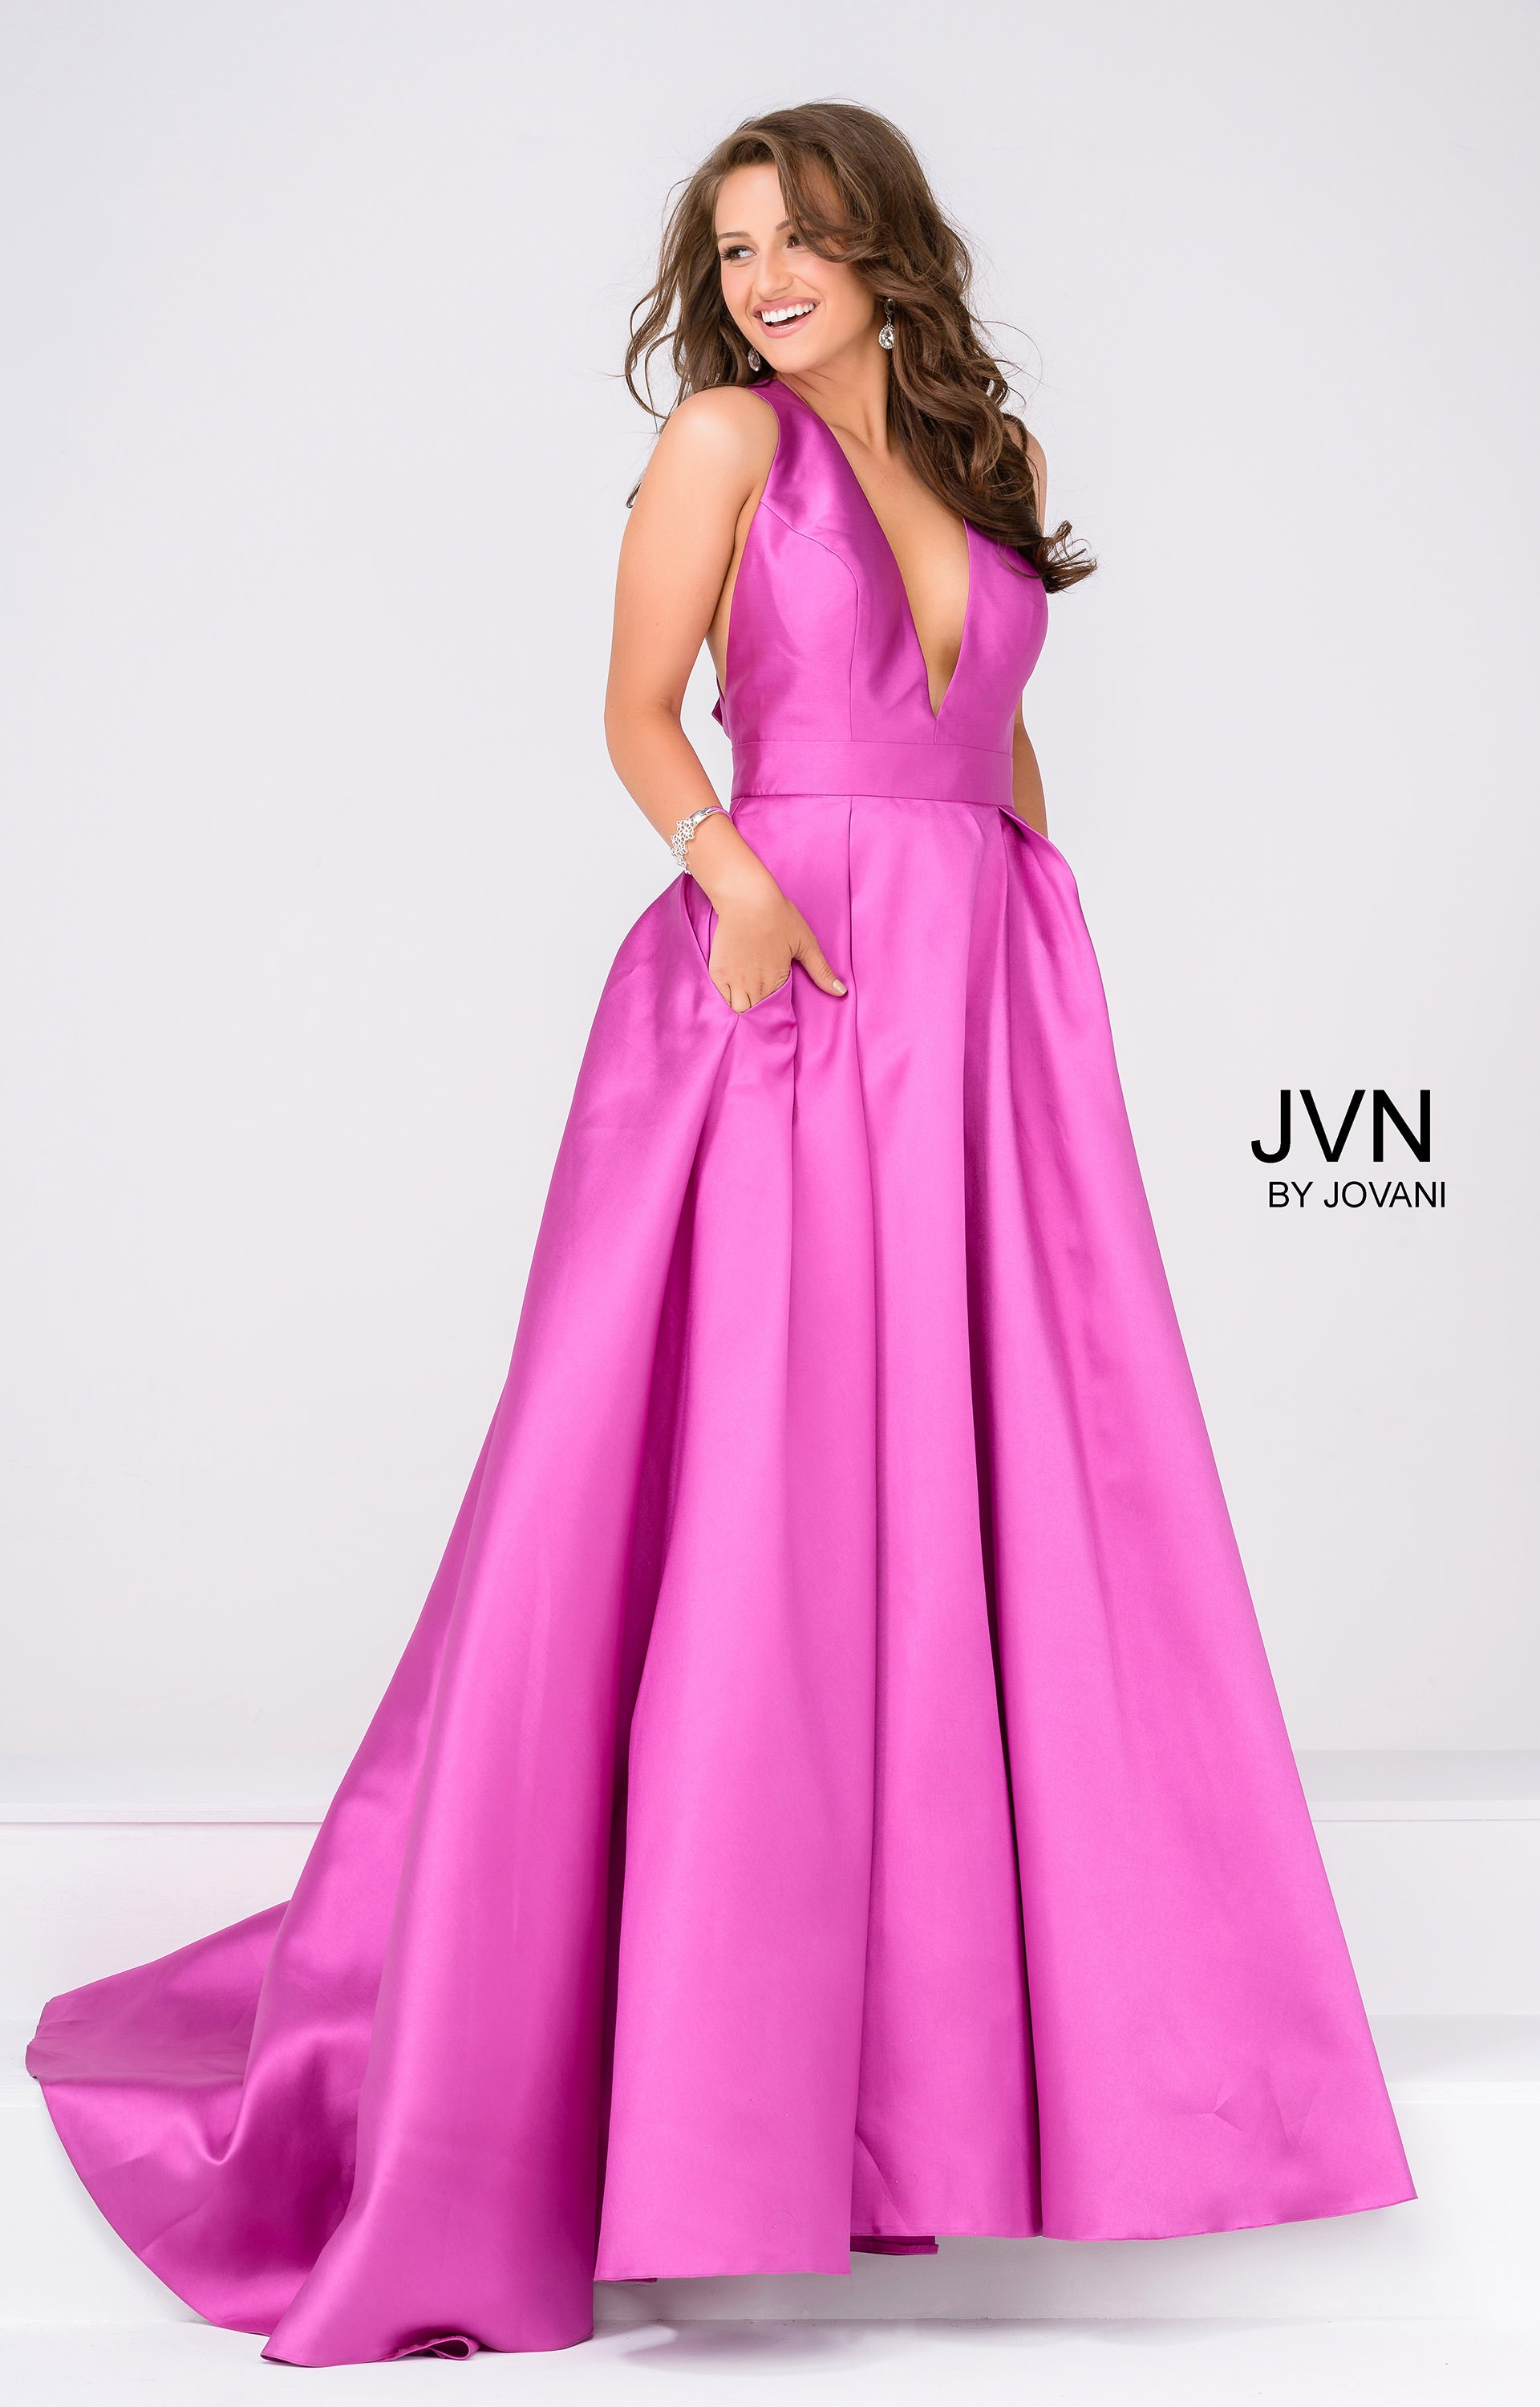 Jovani jvn47530 - Deep V Ball Gown with Pockets Prom Dress